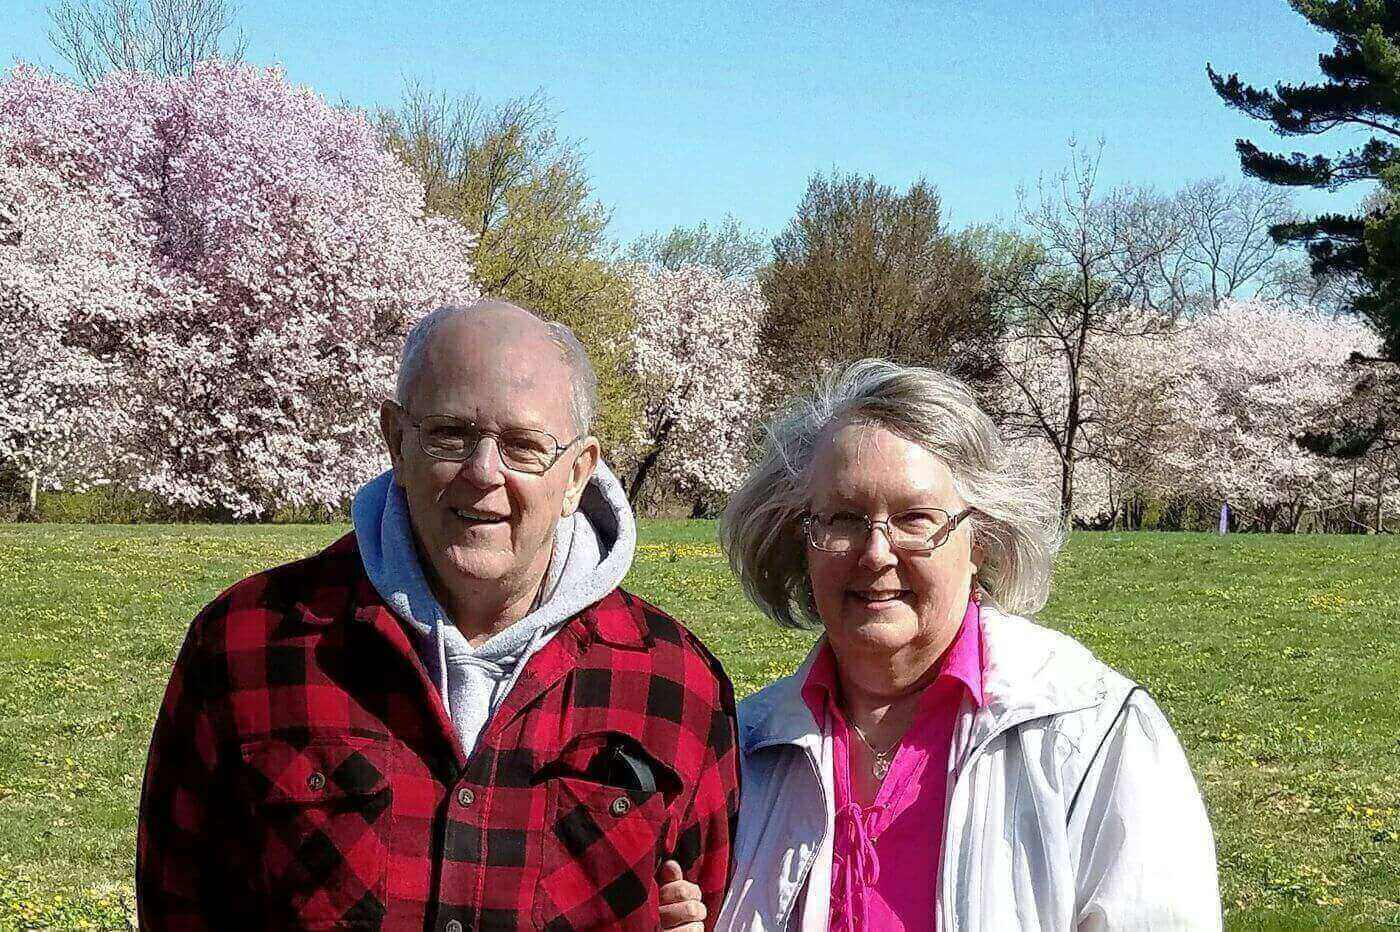 Springfield Couple That Left Their Relationship in God's Hands, Celebrate Eighth Anniversary